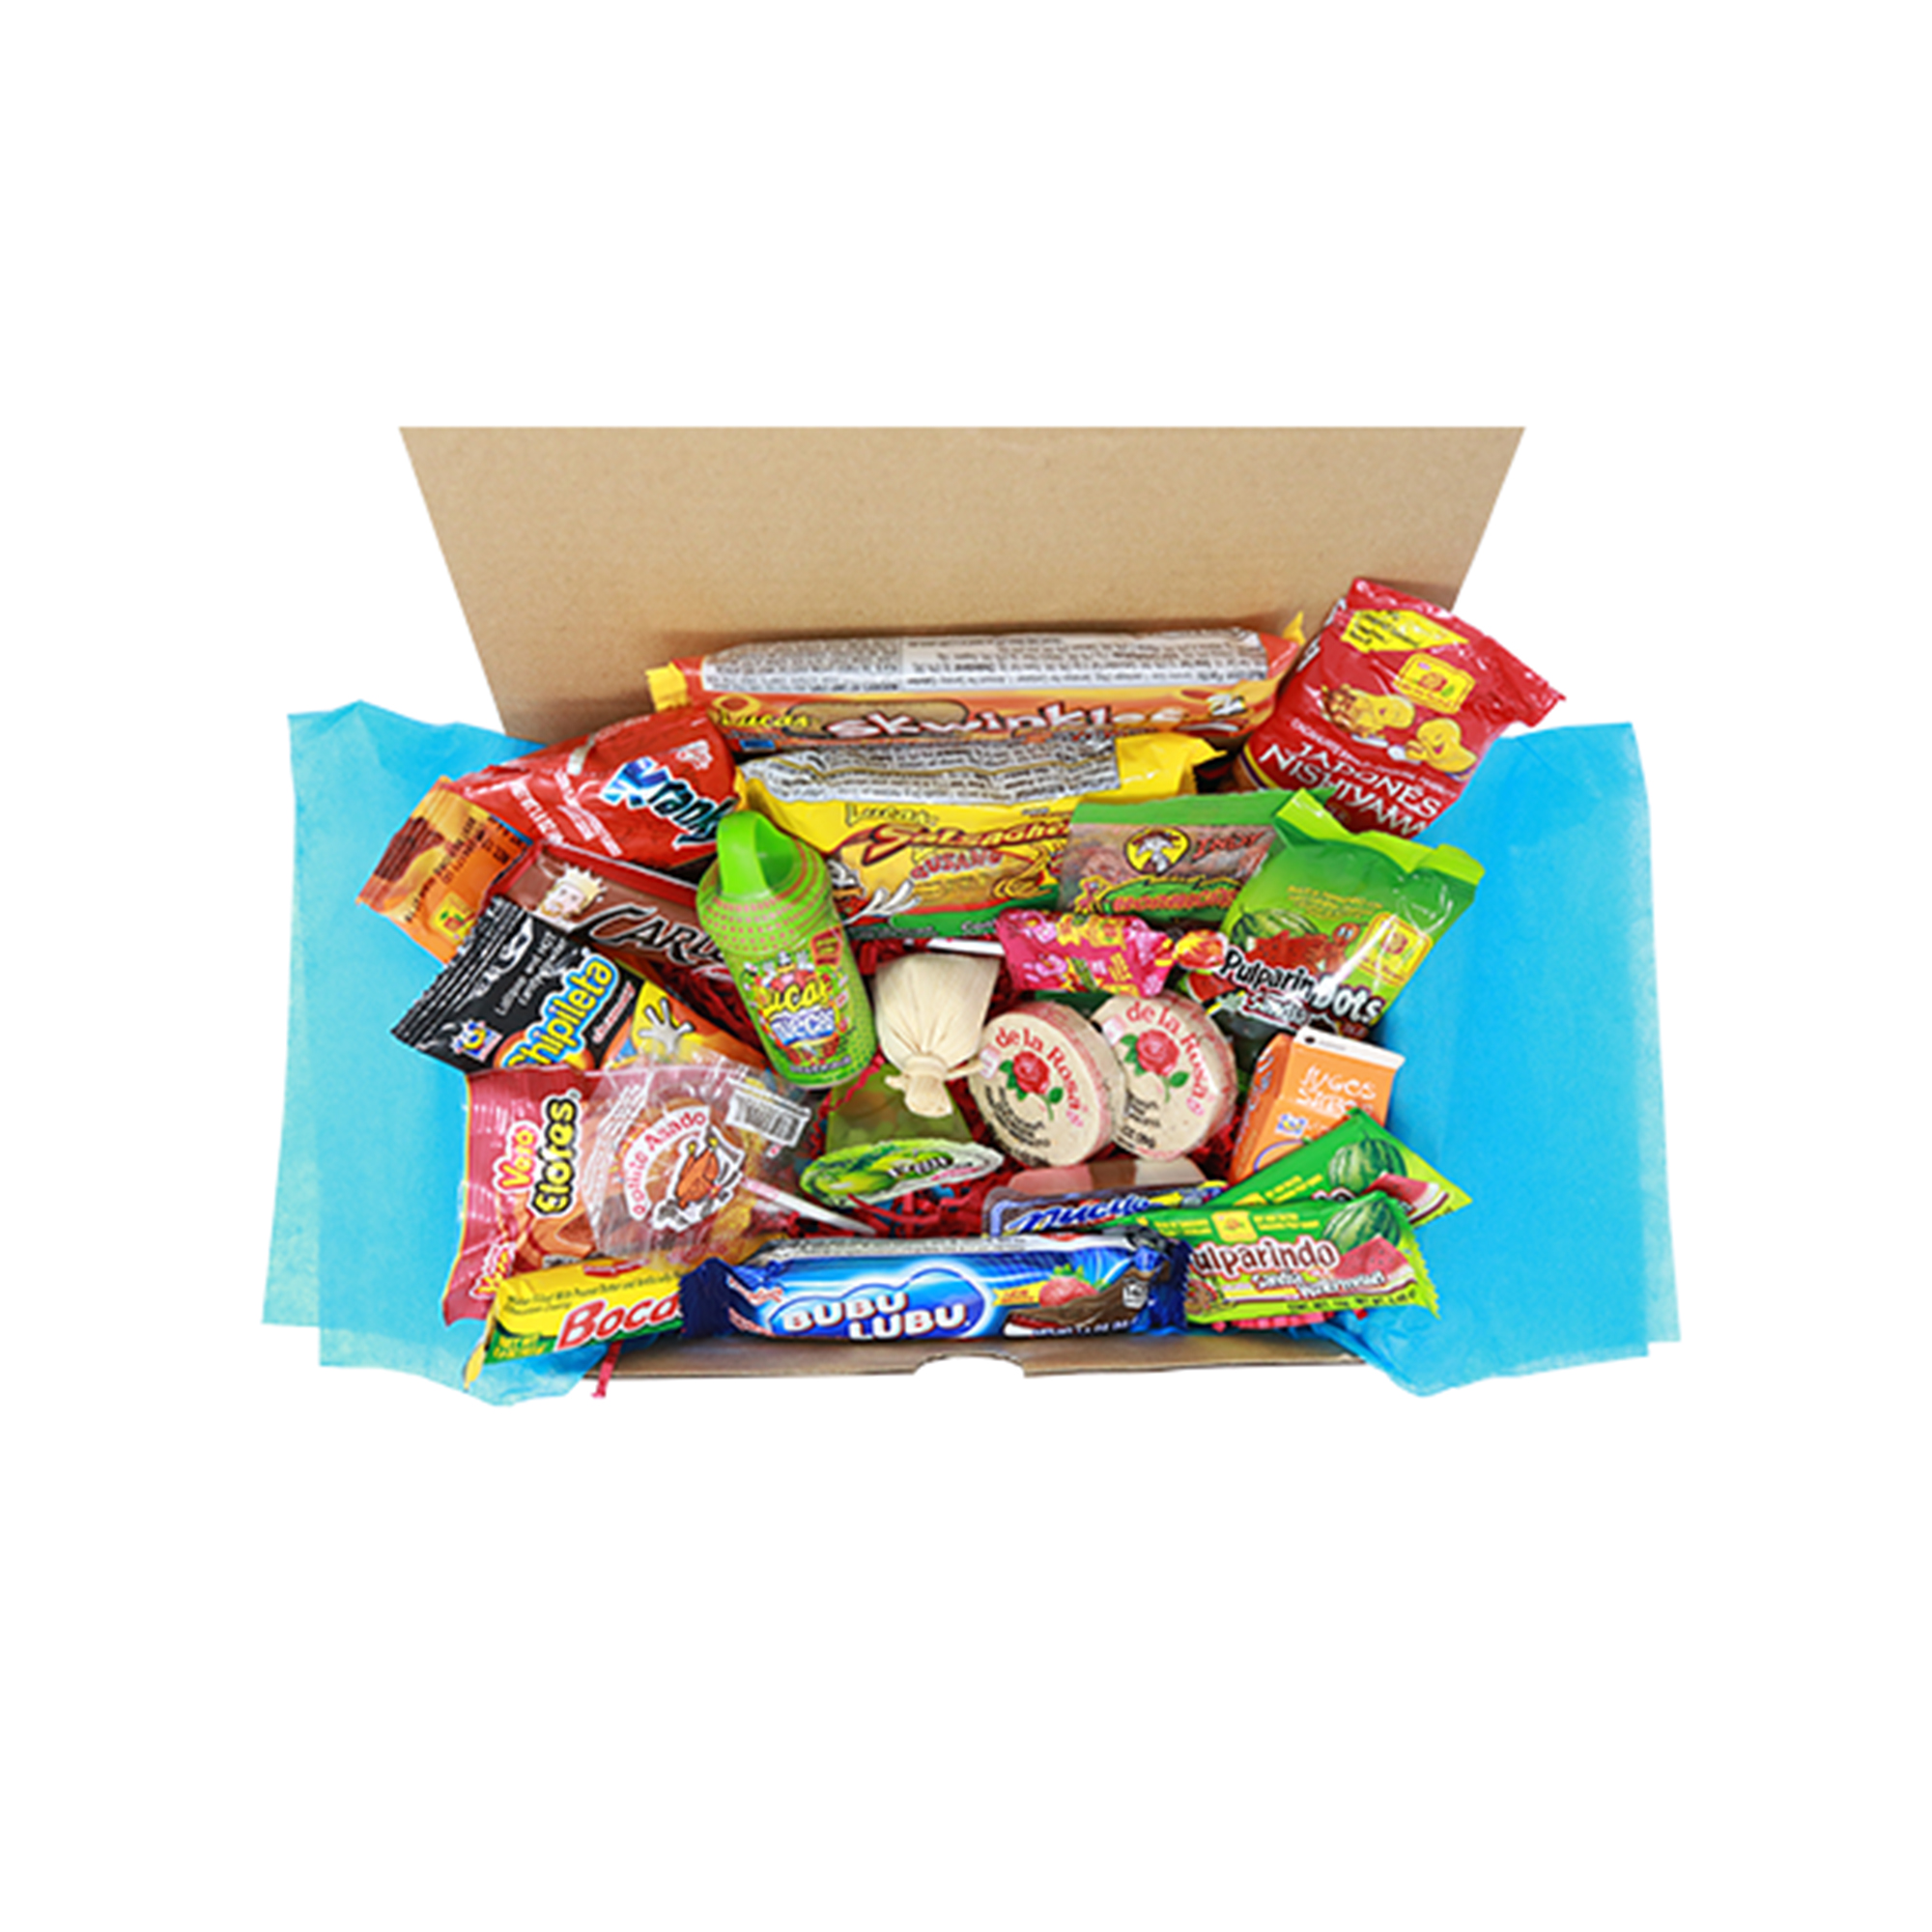 Buy subscription boxes food